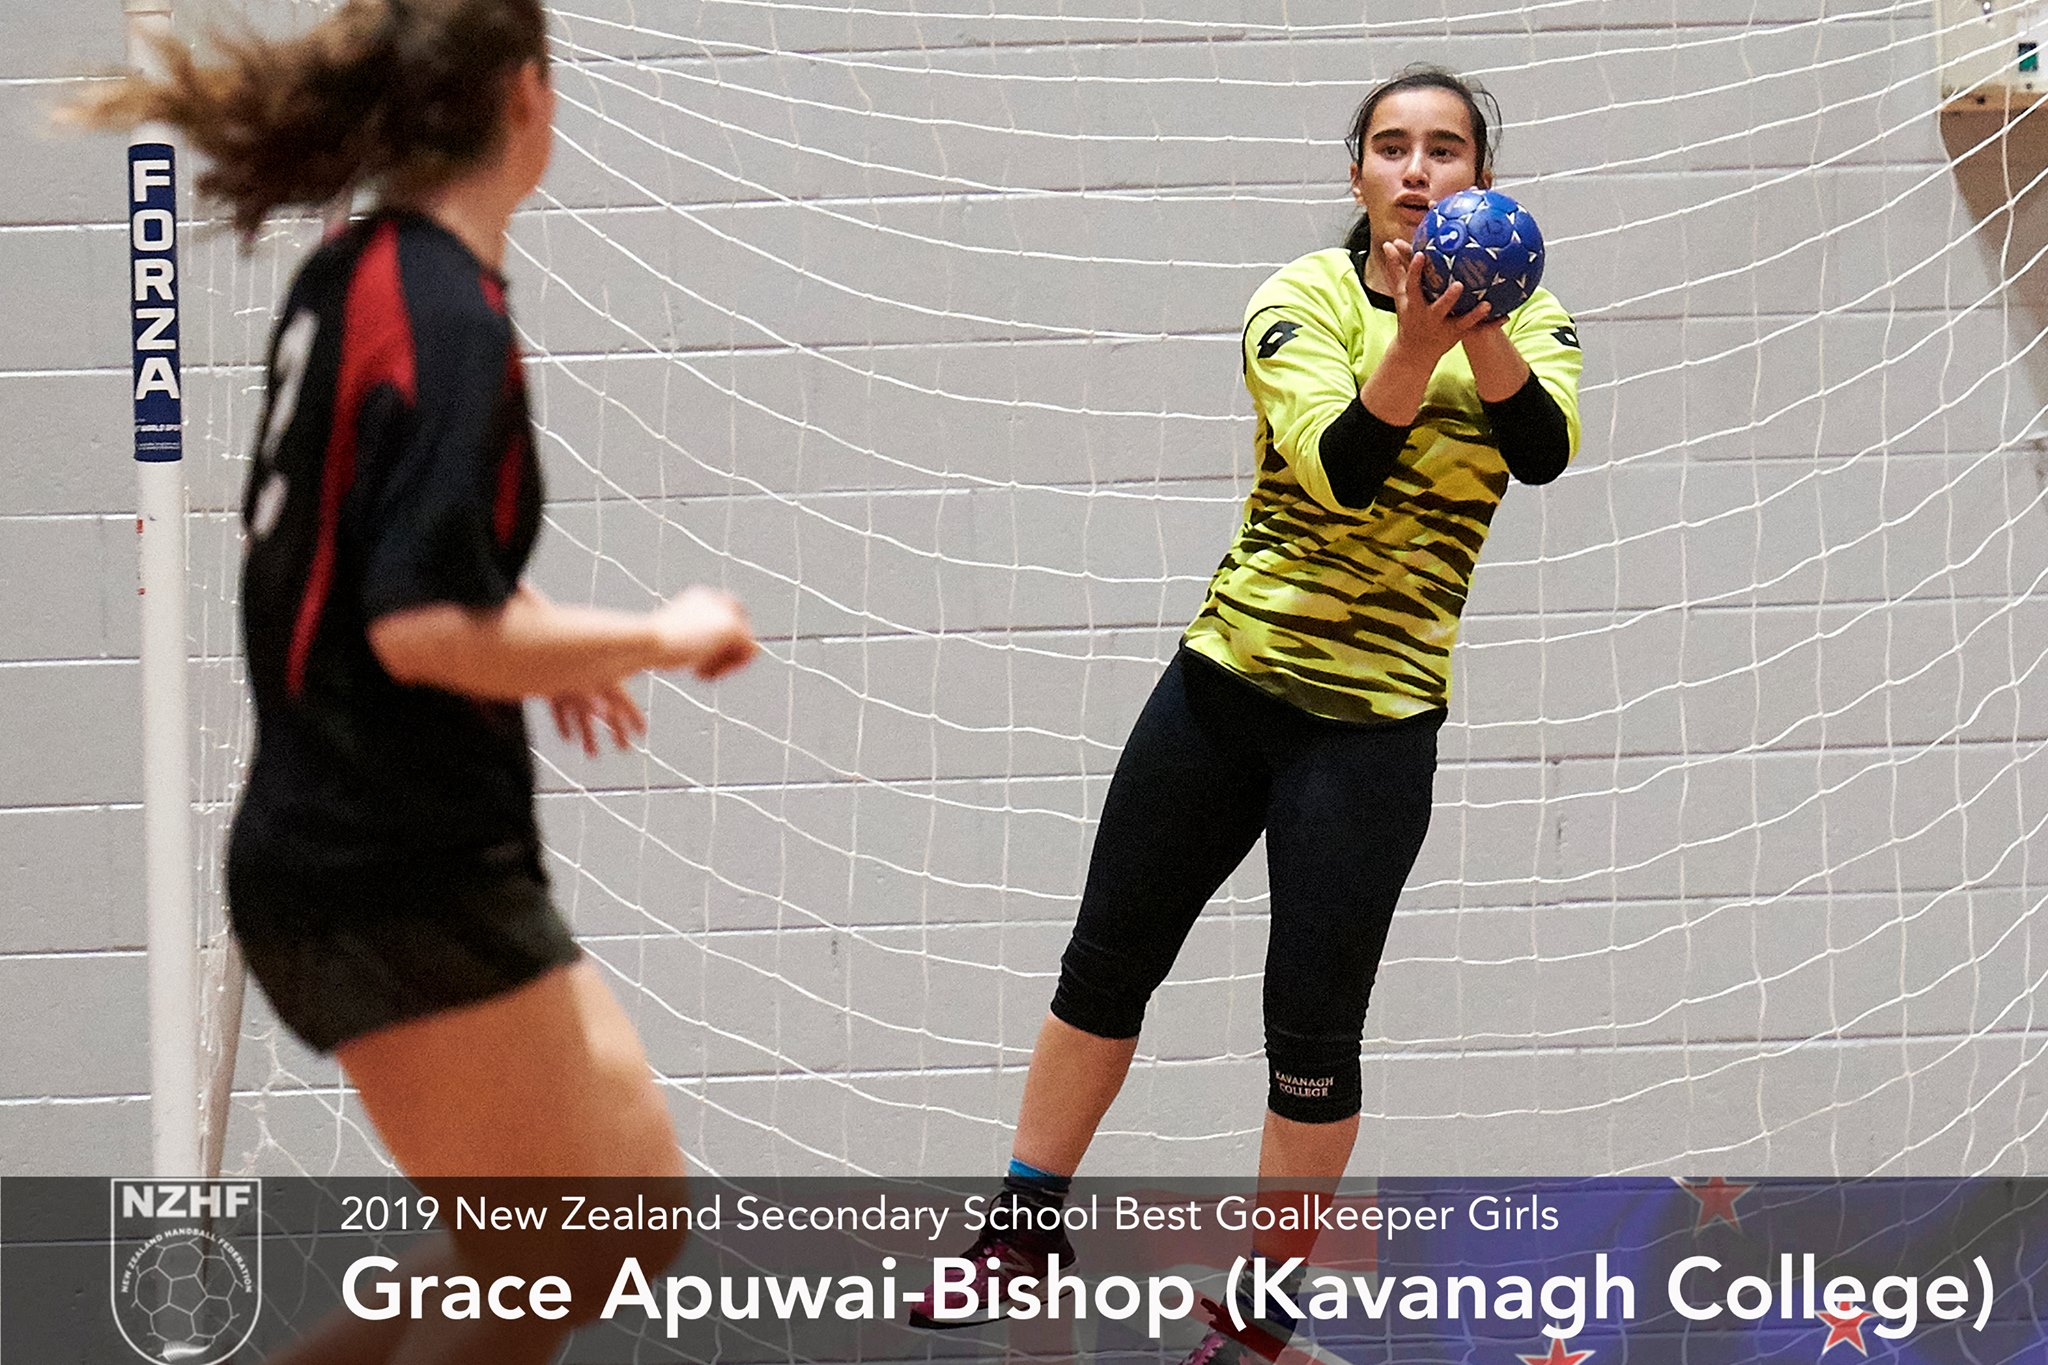 2019 Best goalkeeper girls Grace Apuwai-Bishop Kavanagh College.jpg